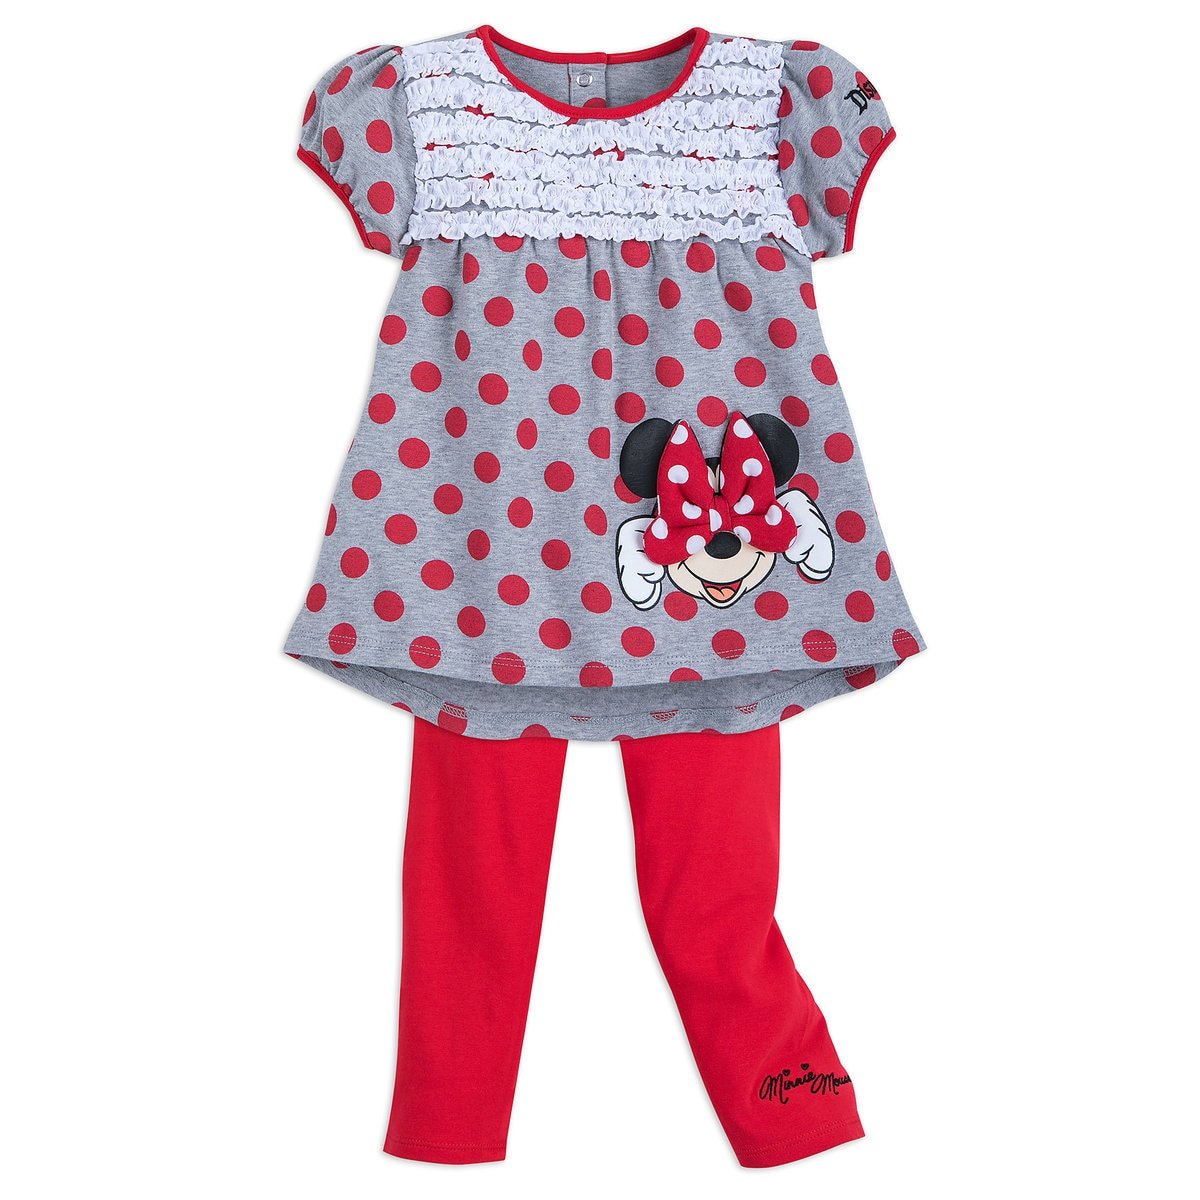 88ff6a7a89495 Product Image of Minnie Mouse Red Dot Top and Leggings Set for Girls -  Disneyland #